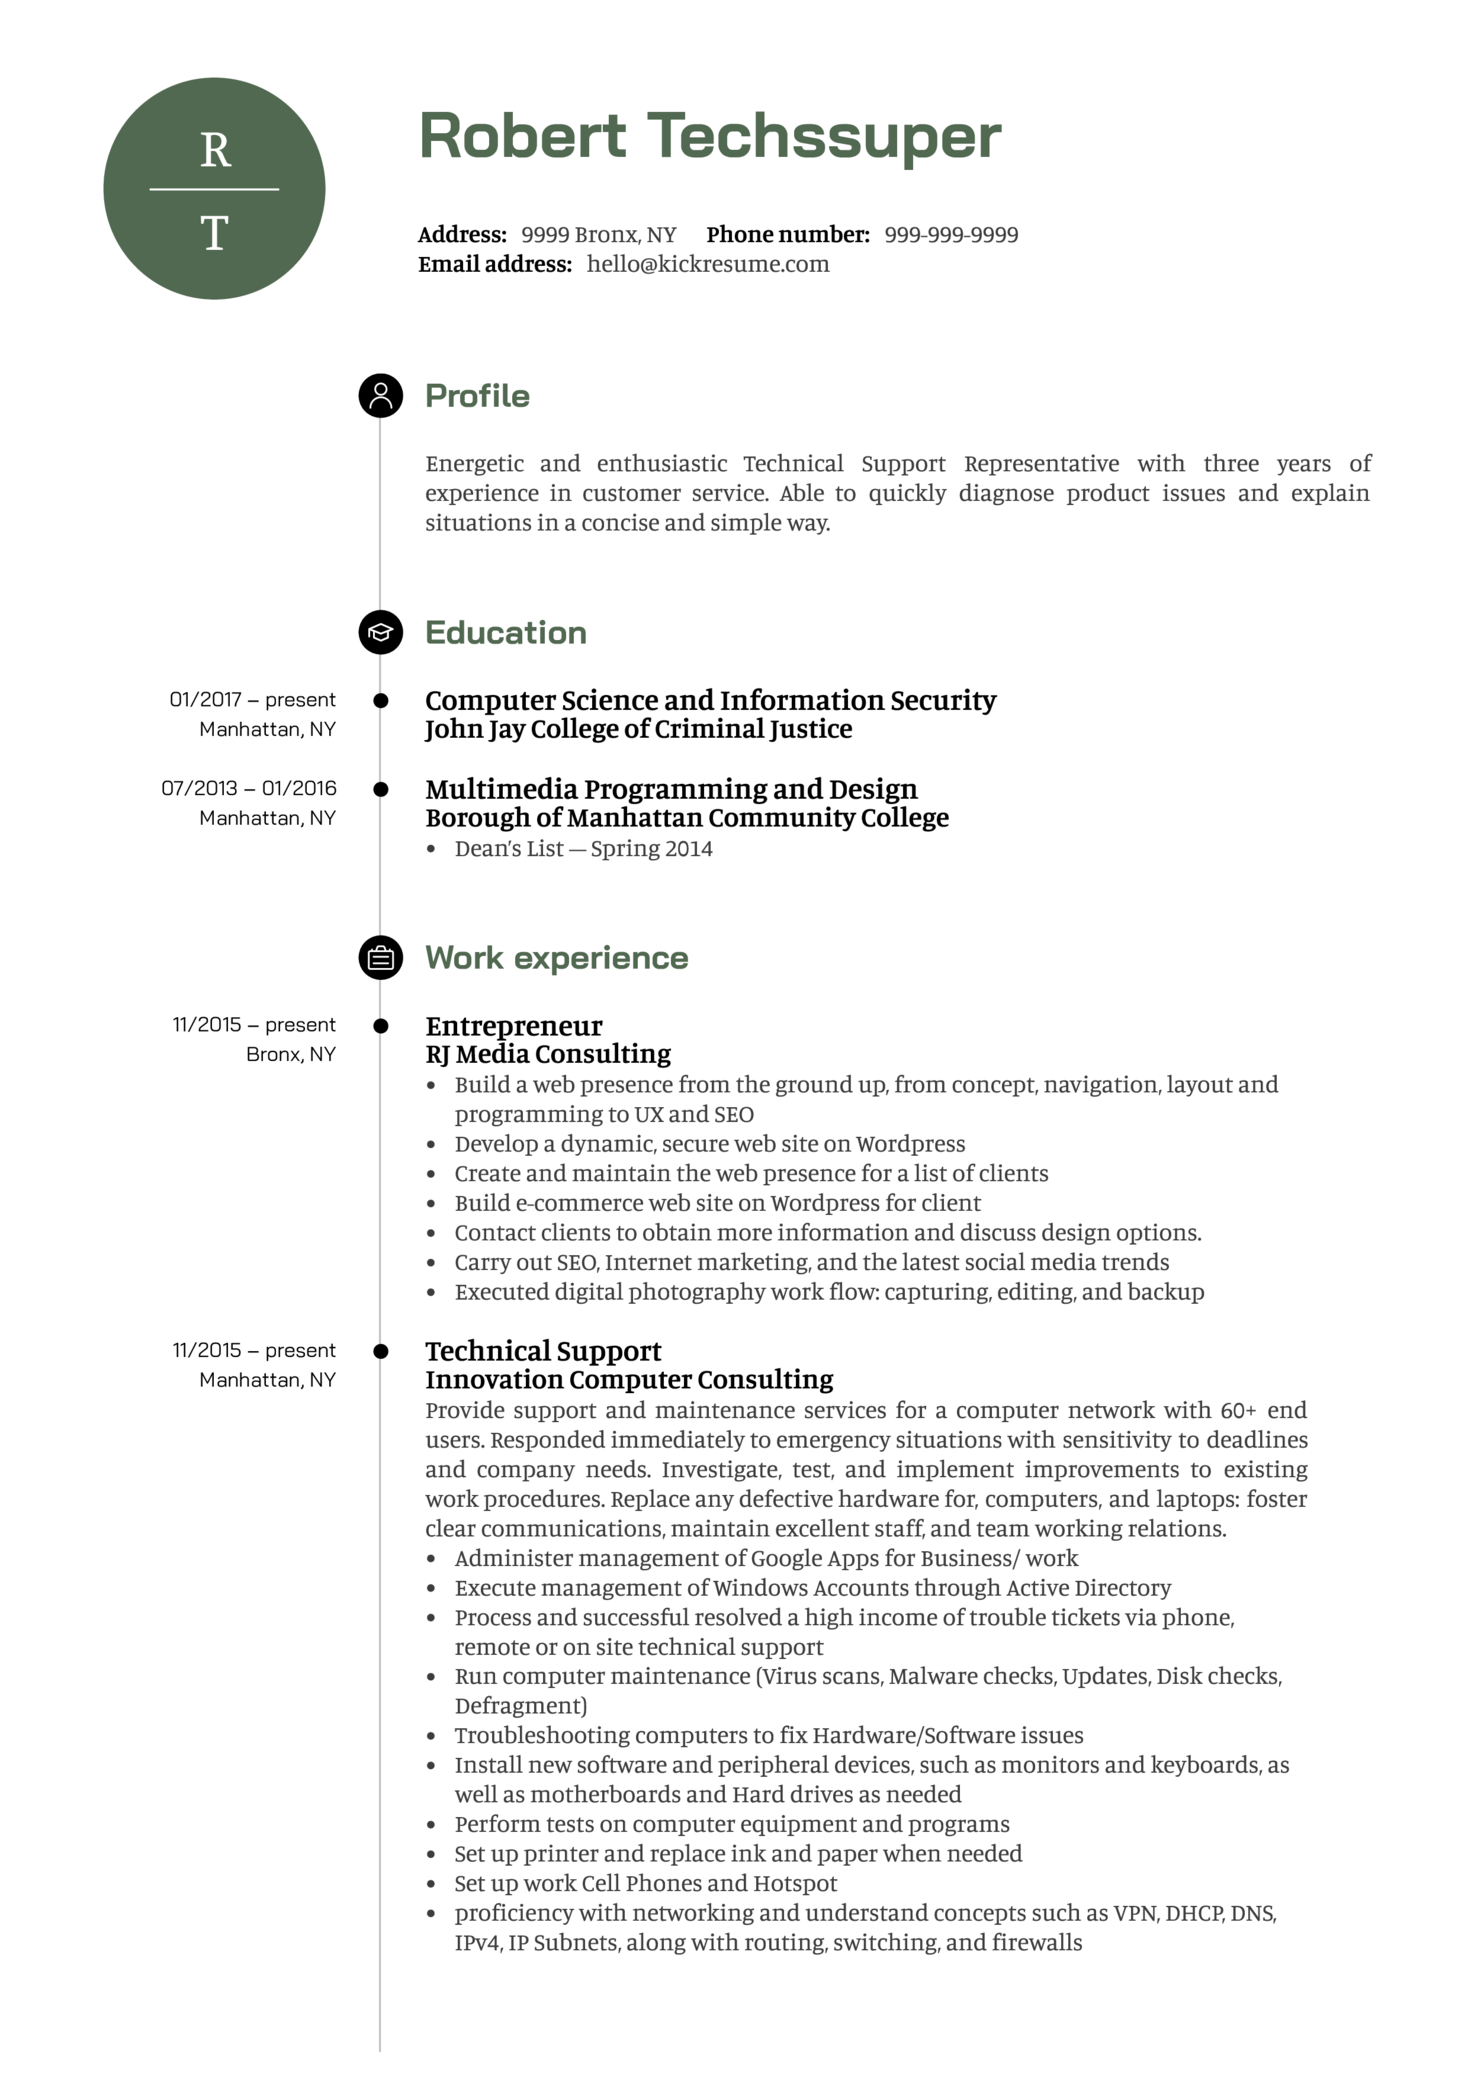 Resume Examples by Real People: Technical support representative ...